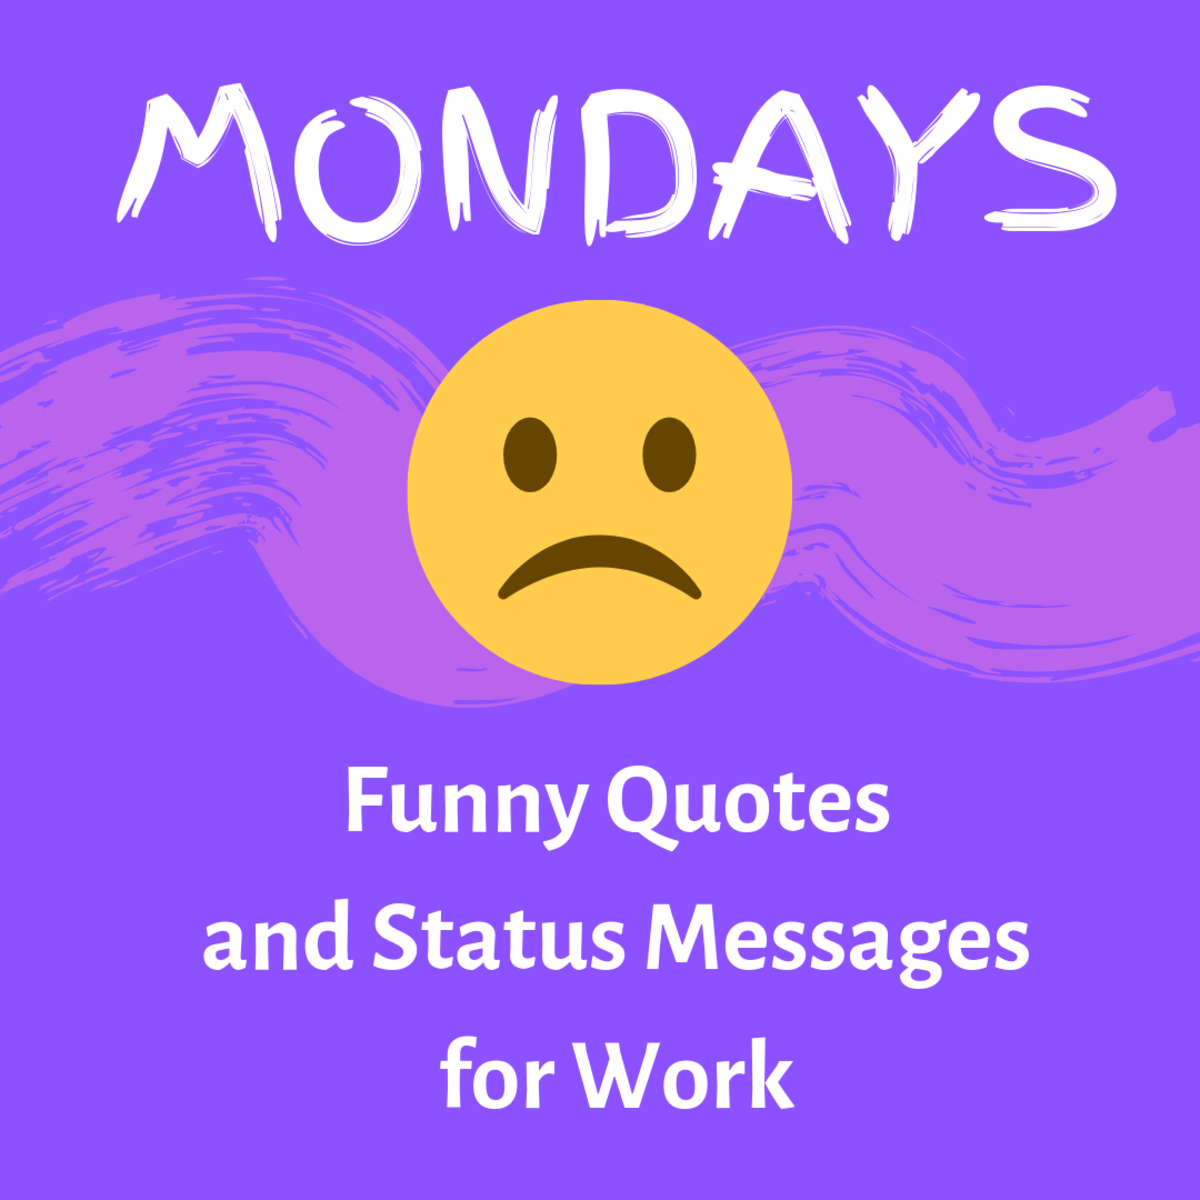 Funny Monday Quotes for Work: Statuses and Pictures